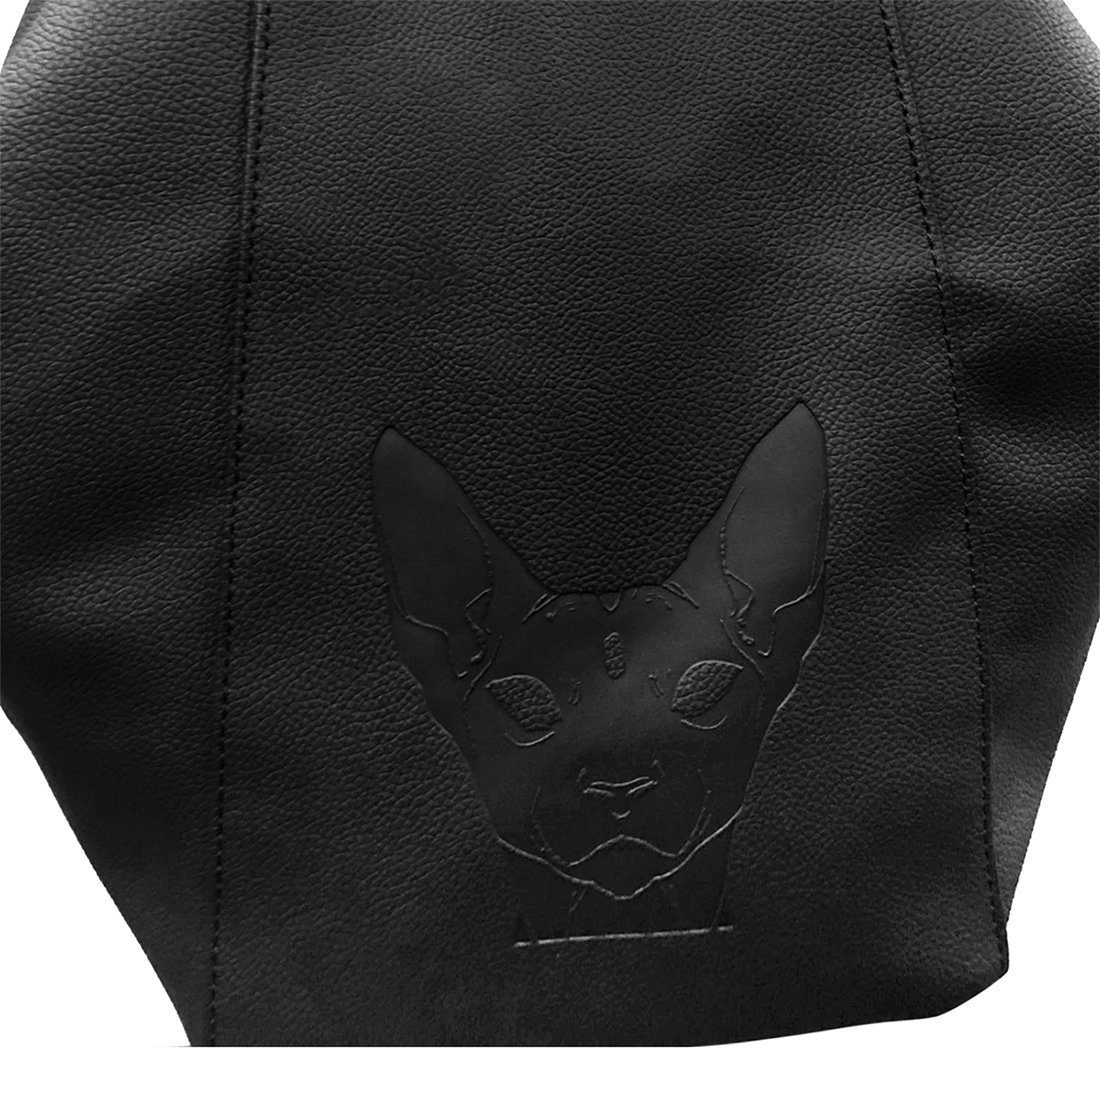 The Sphynx Pyramid BackPack